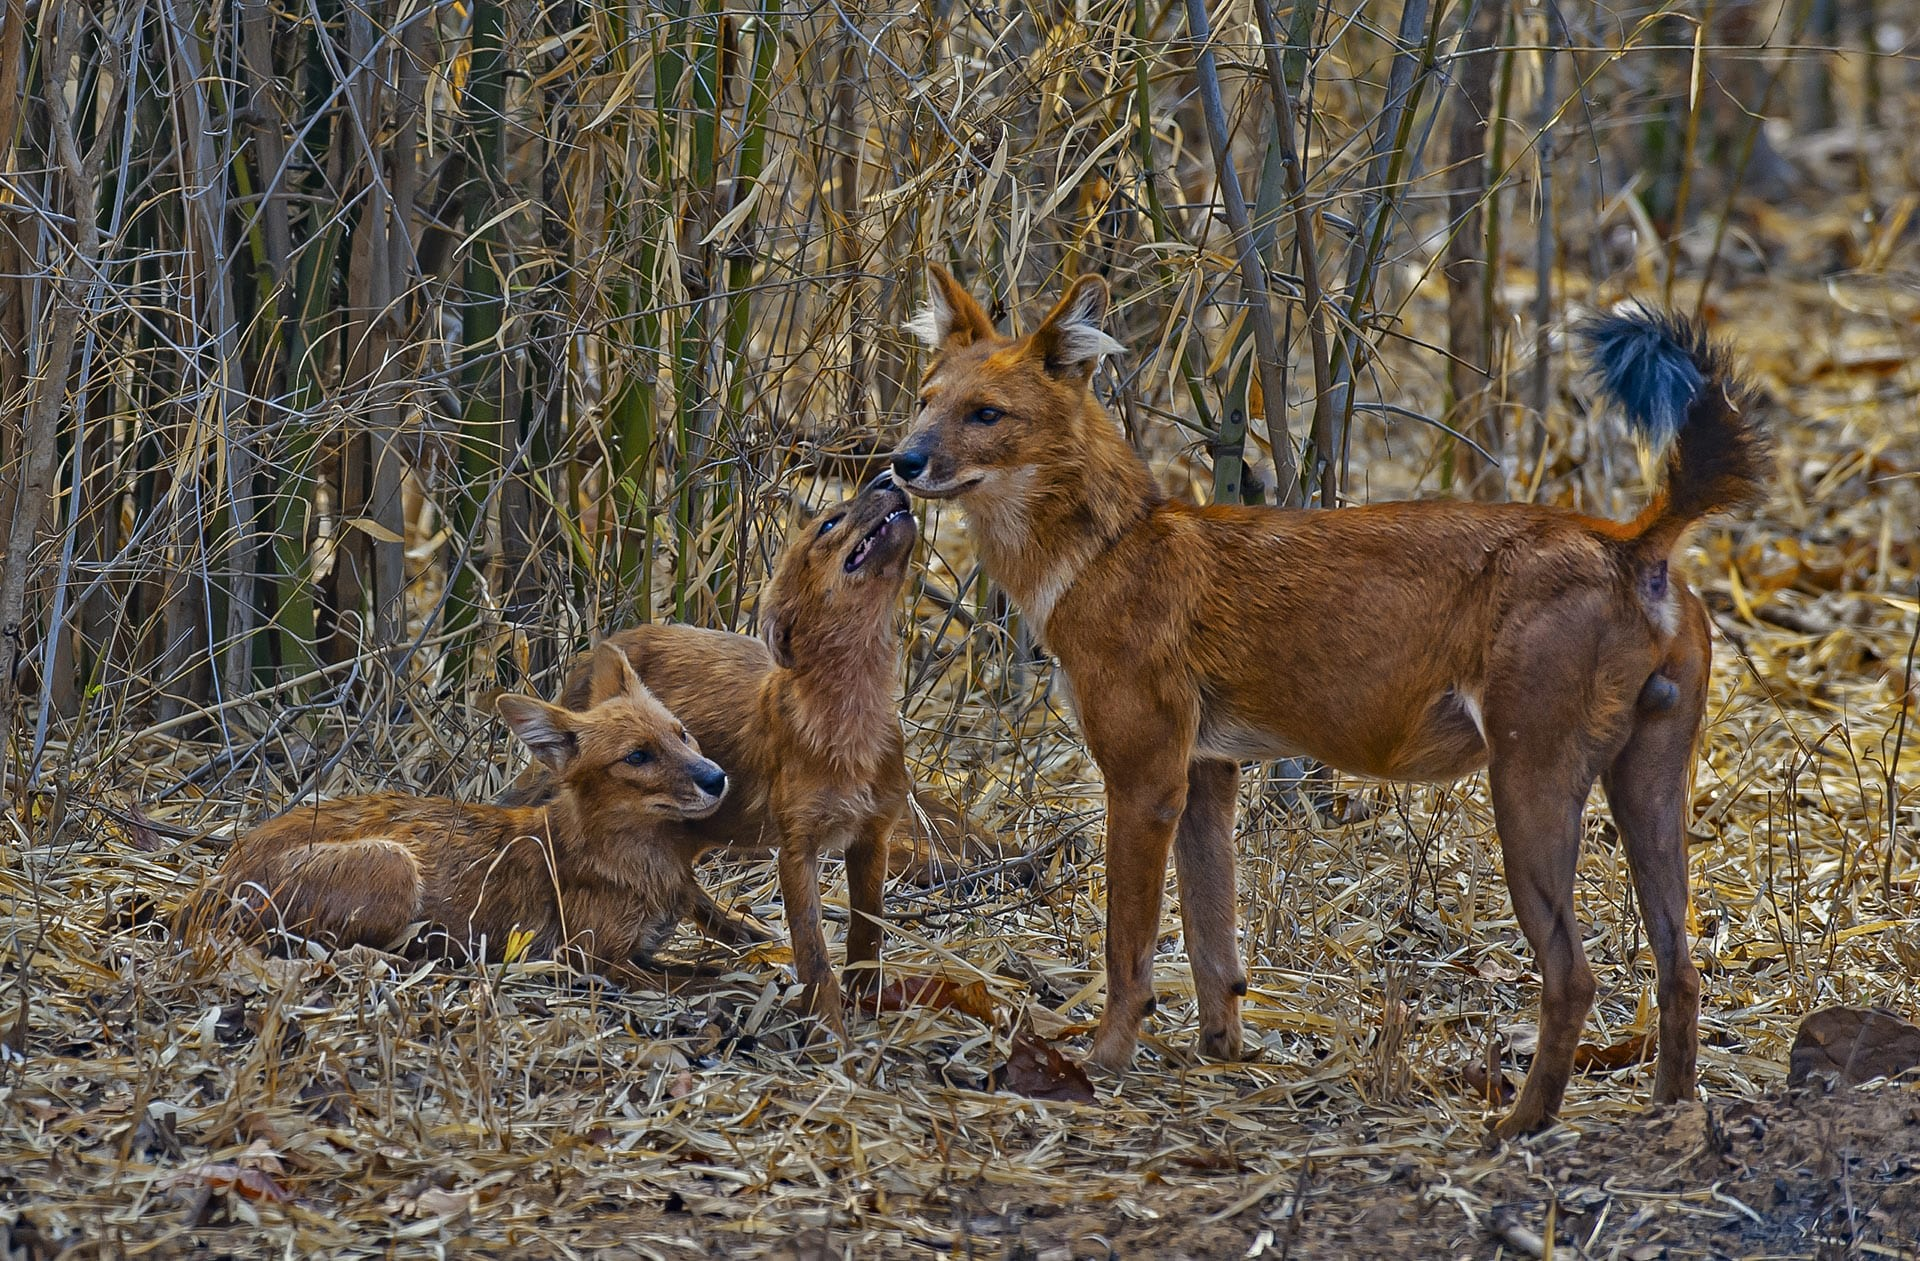 Adult dholes like this alpha male will regurgitate food to feed their young. The pups begin to accompany the pack on hunts when they are about six months old. Photo: Dhritiman Mukherjee